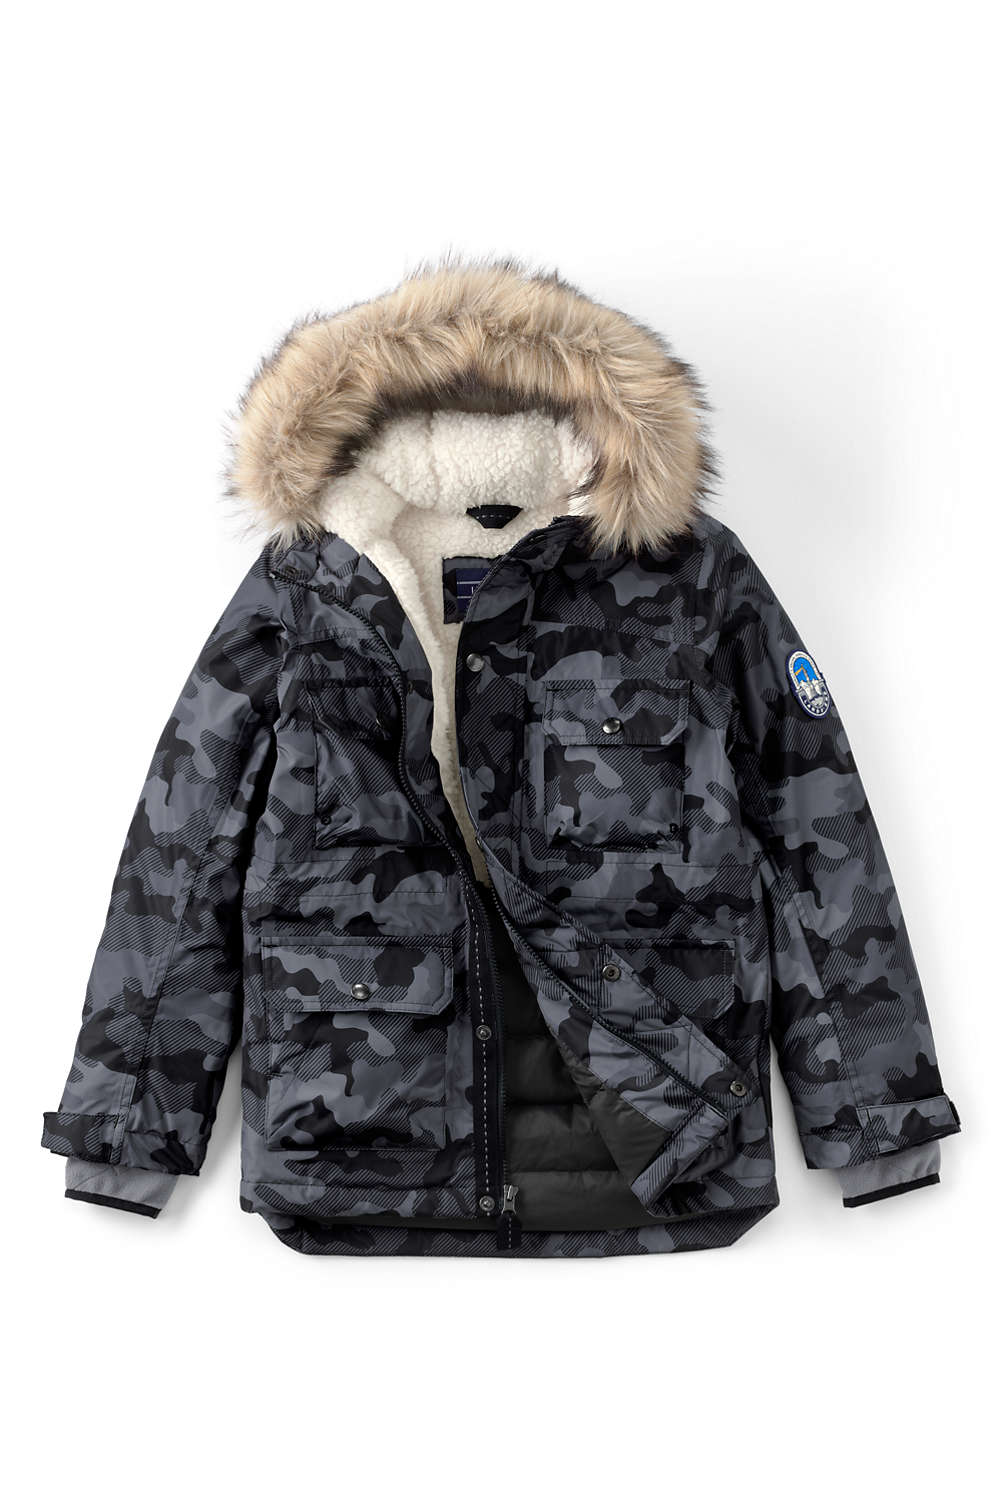 c8b8c99e2 Boys Expedition Down Winter Parka